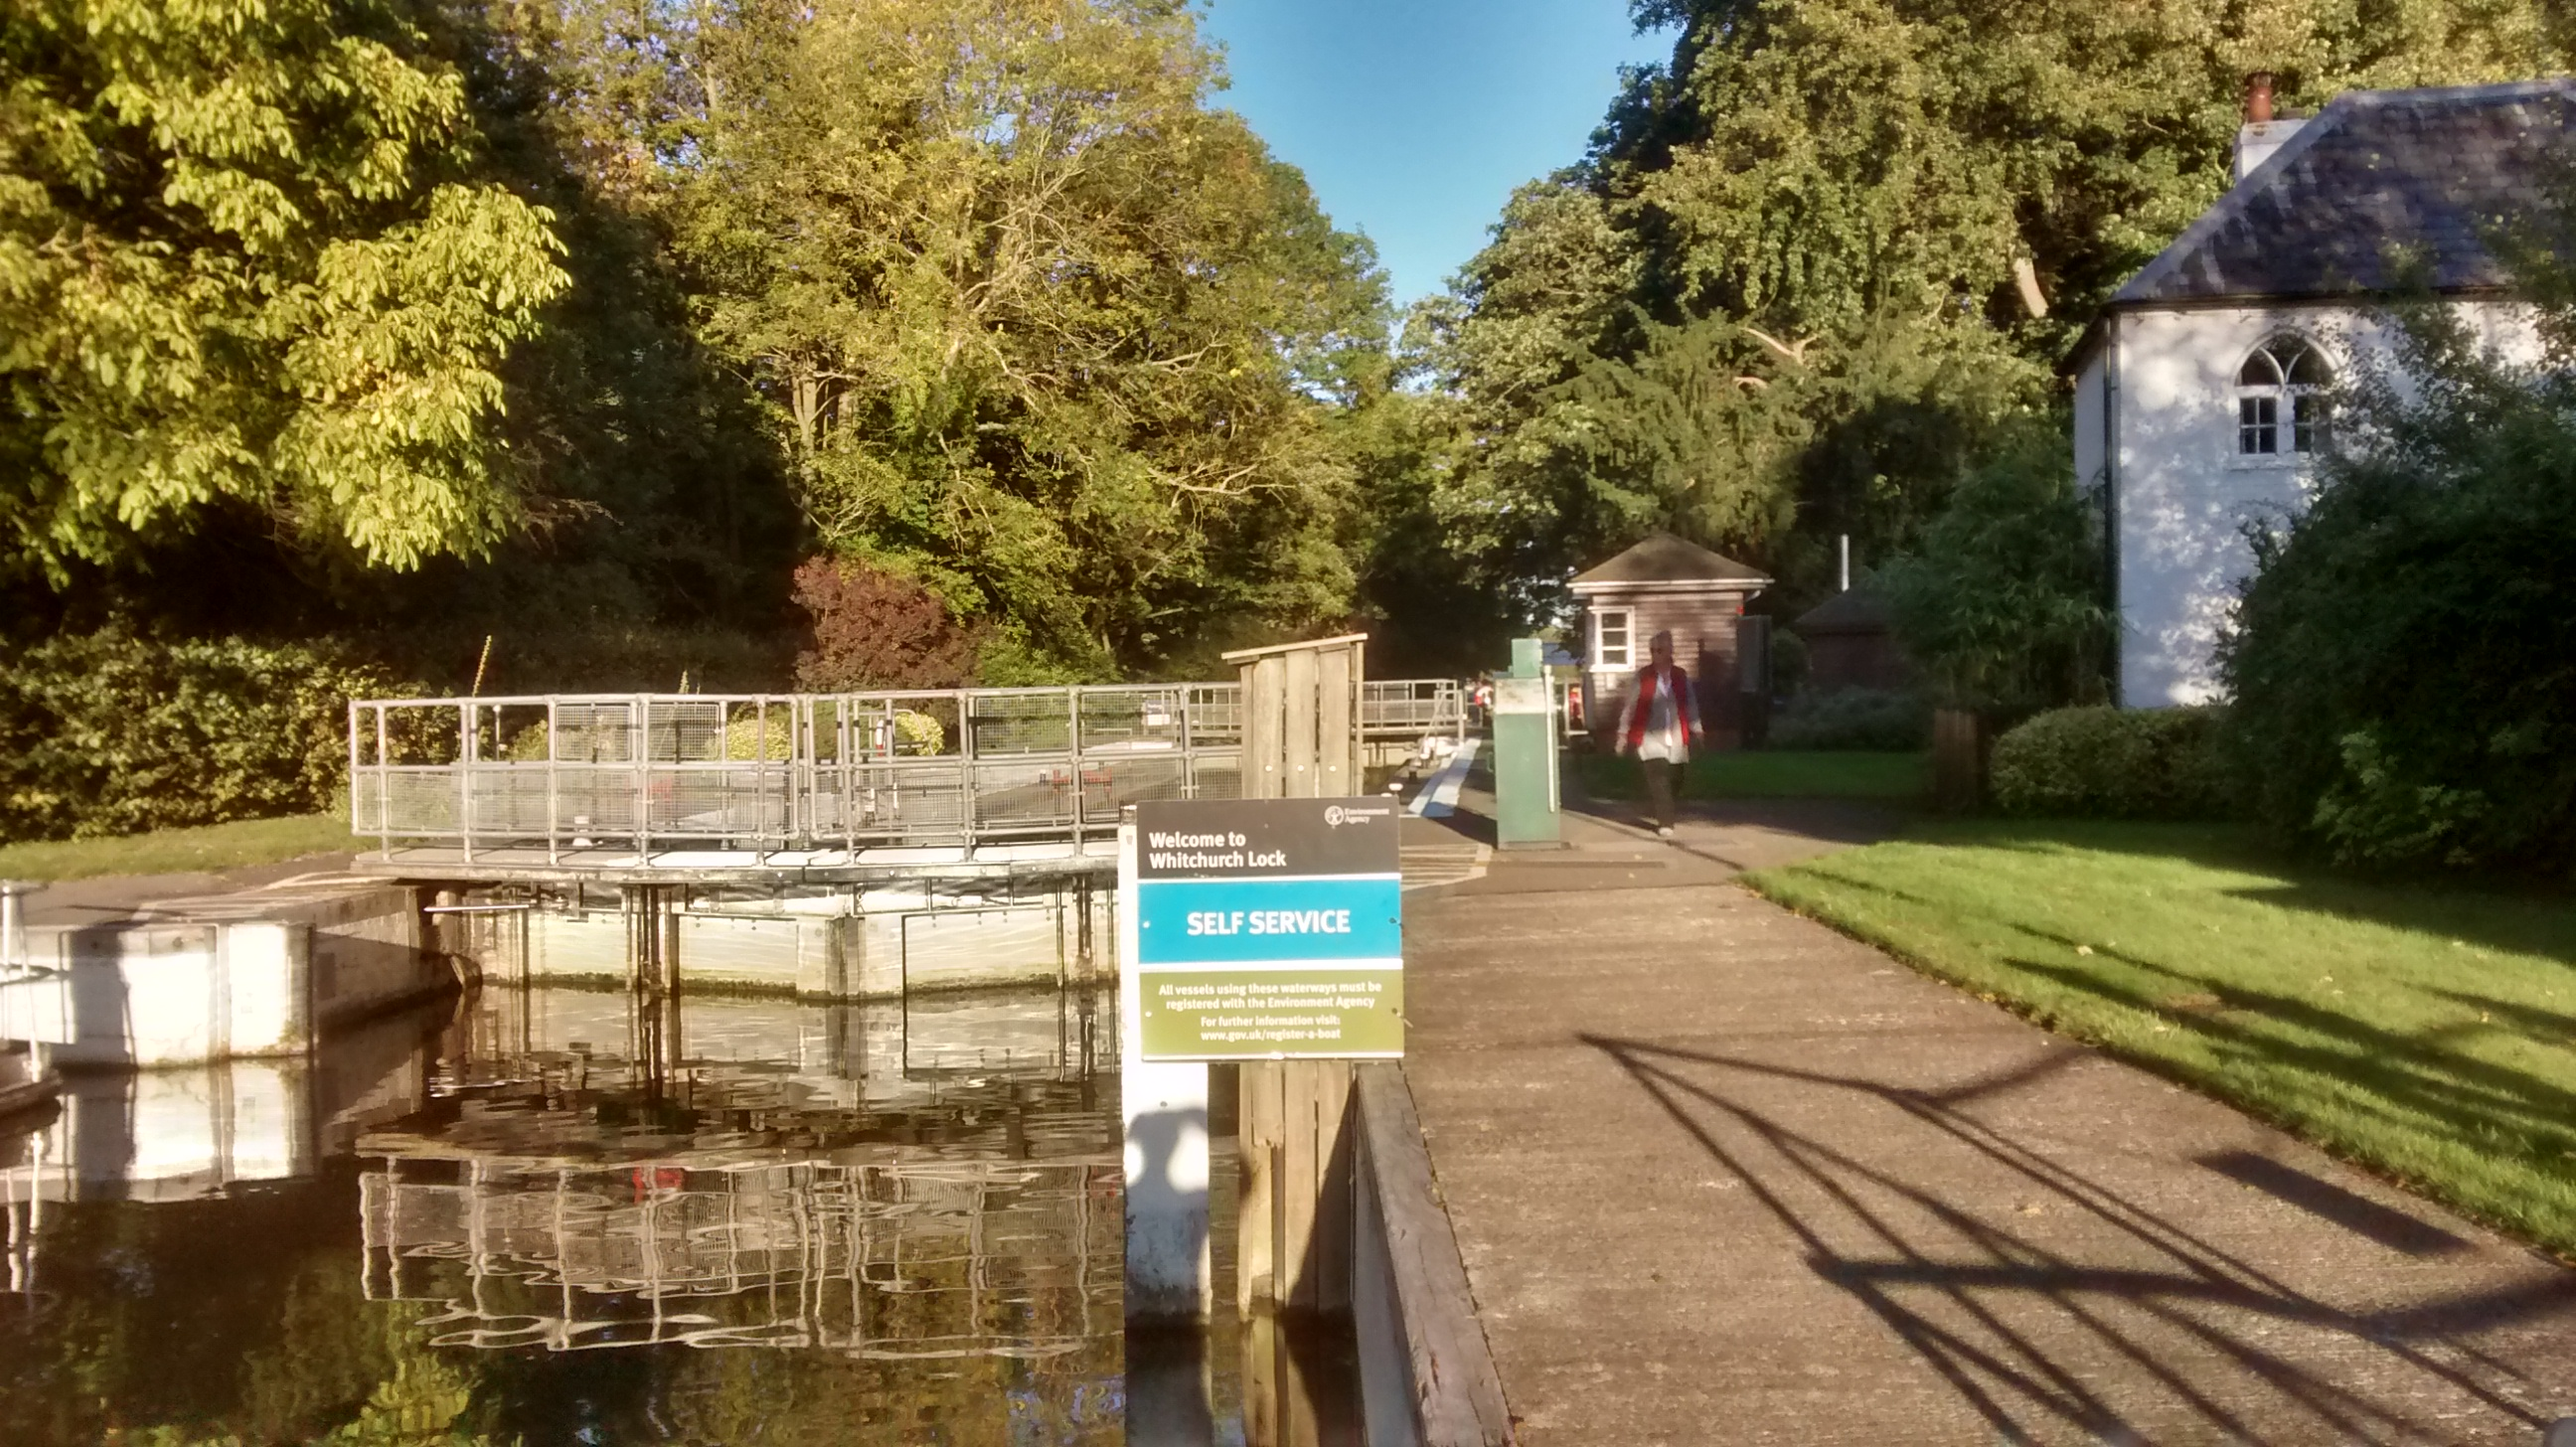 Whitchurch Lock on self service.